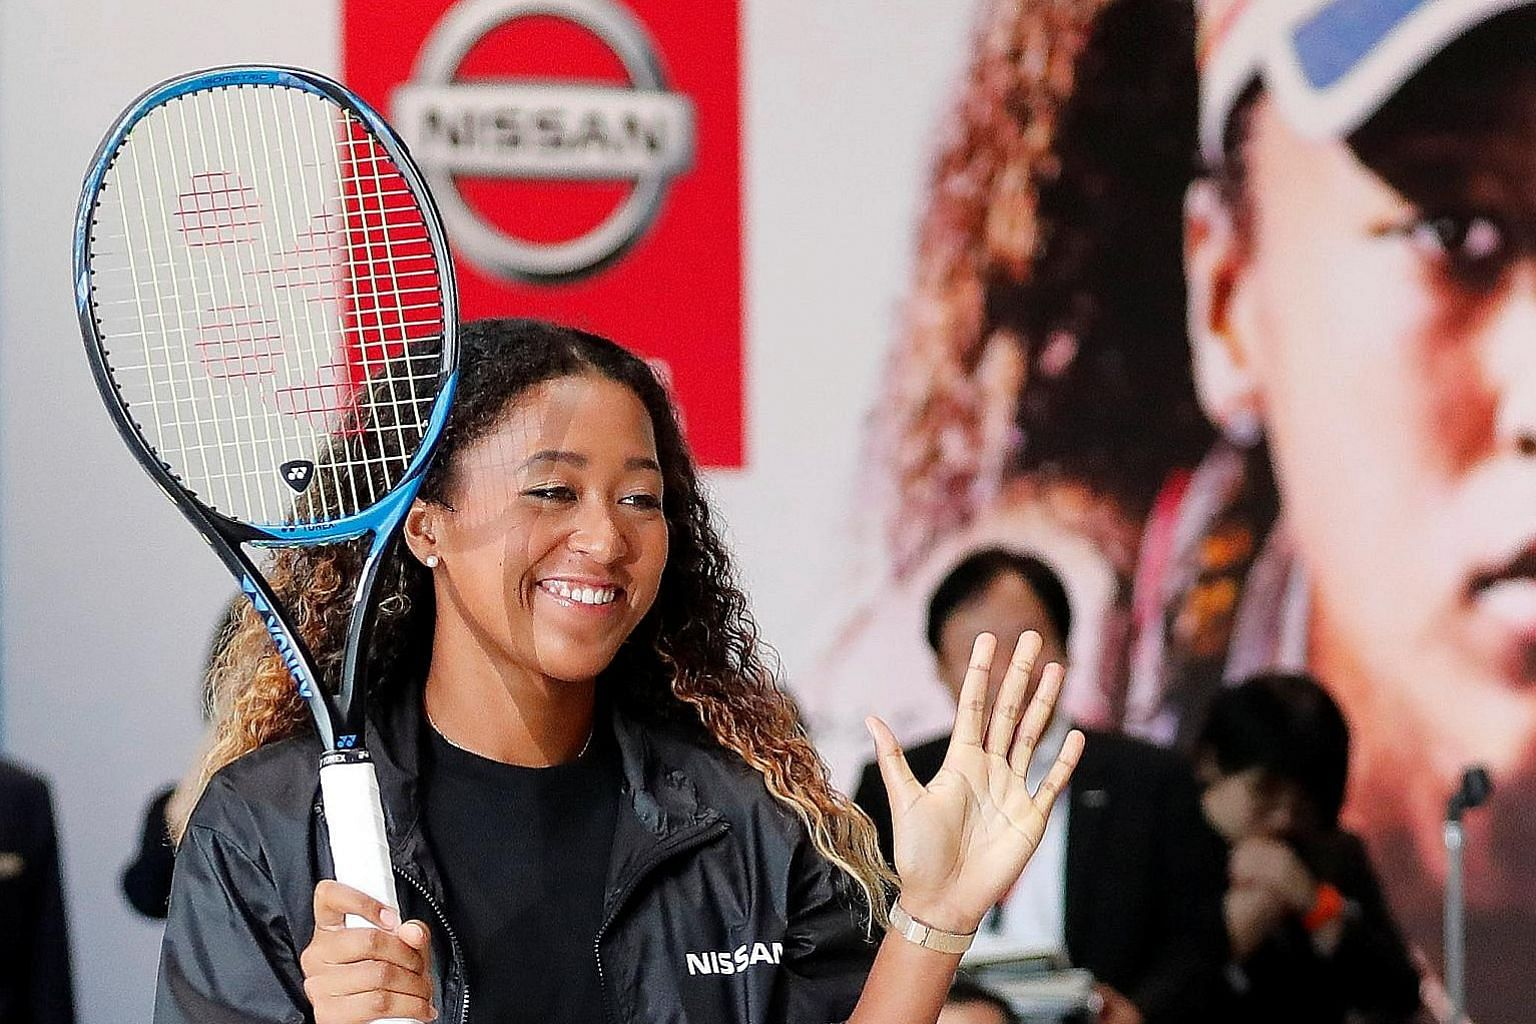 Newly crowned US Open champion Naomi Osaka, the world No. 7 who is Nissan's new brand ambassador for the next three years, is aiming to break into the top five by the year end and also reach the season-ending WTA Finals in Singapore from Oct 21-28.